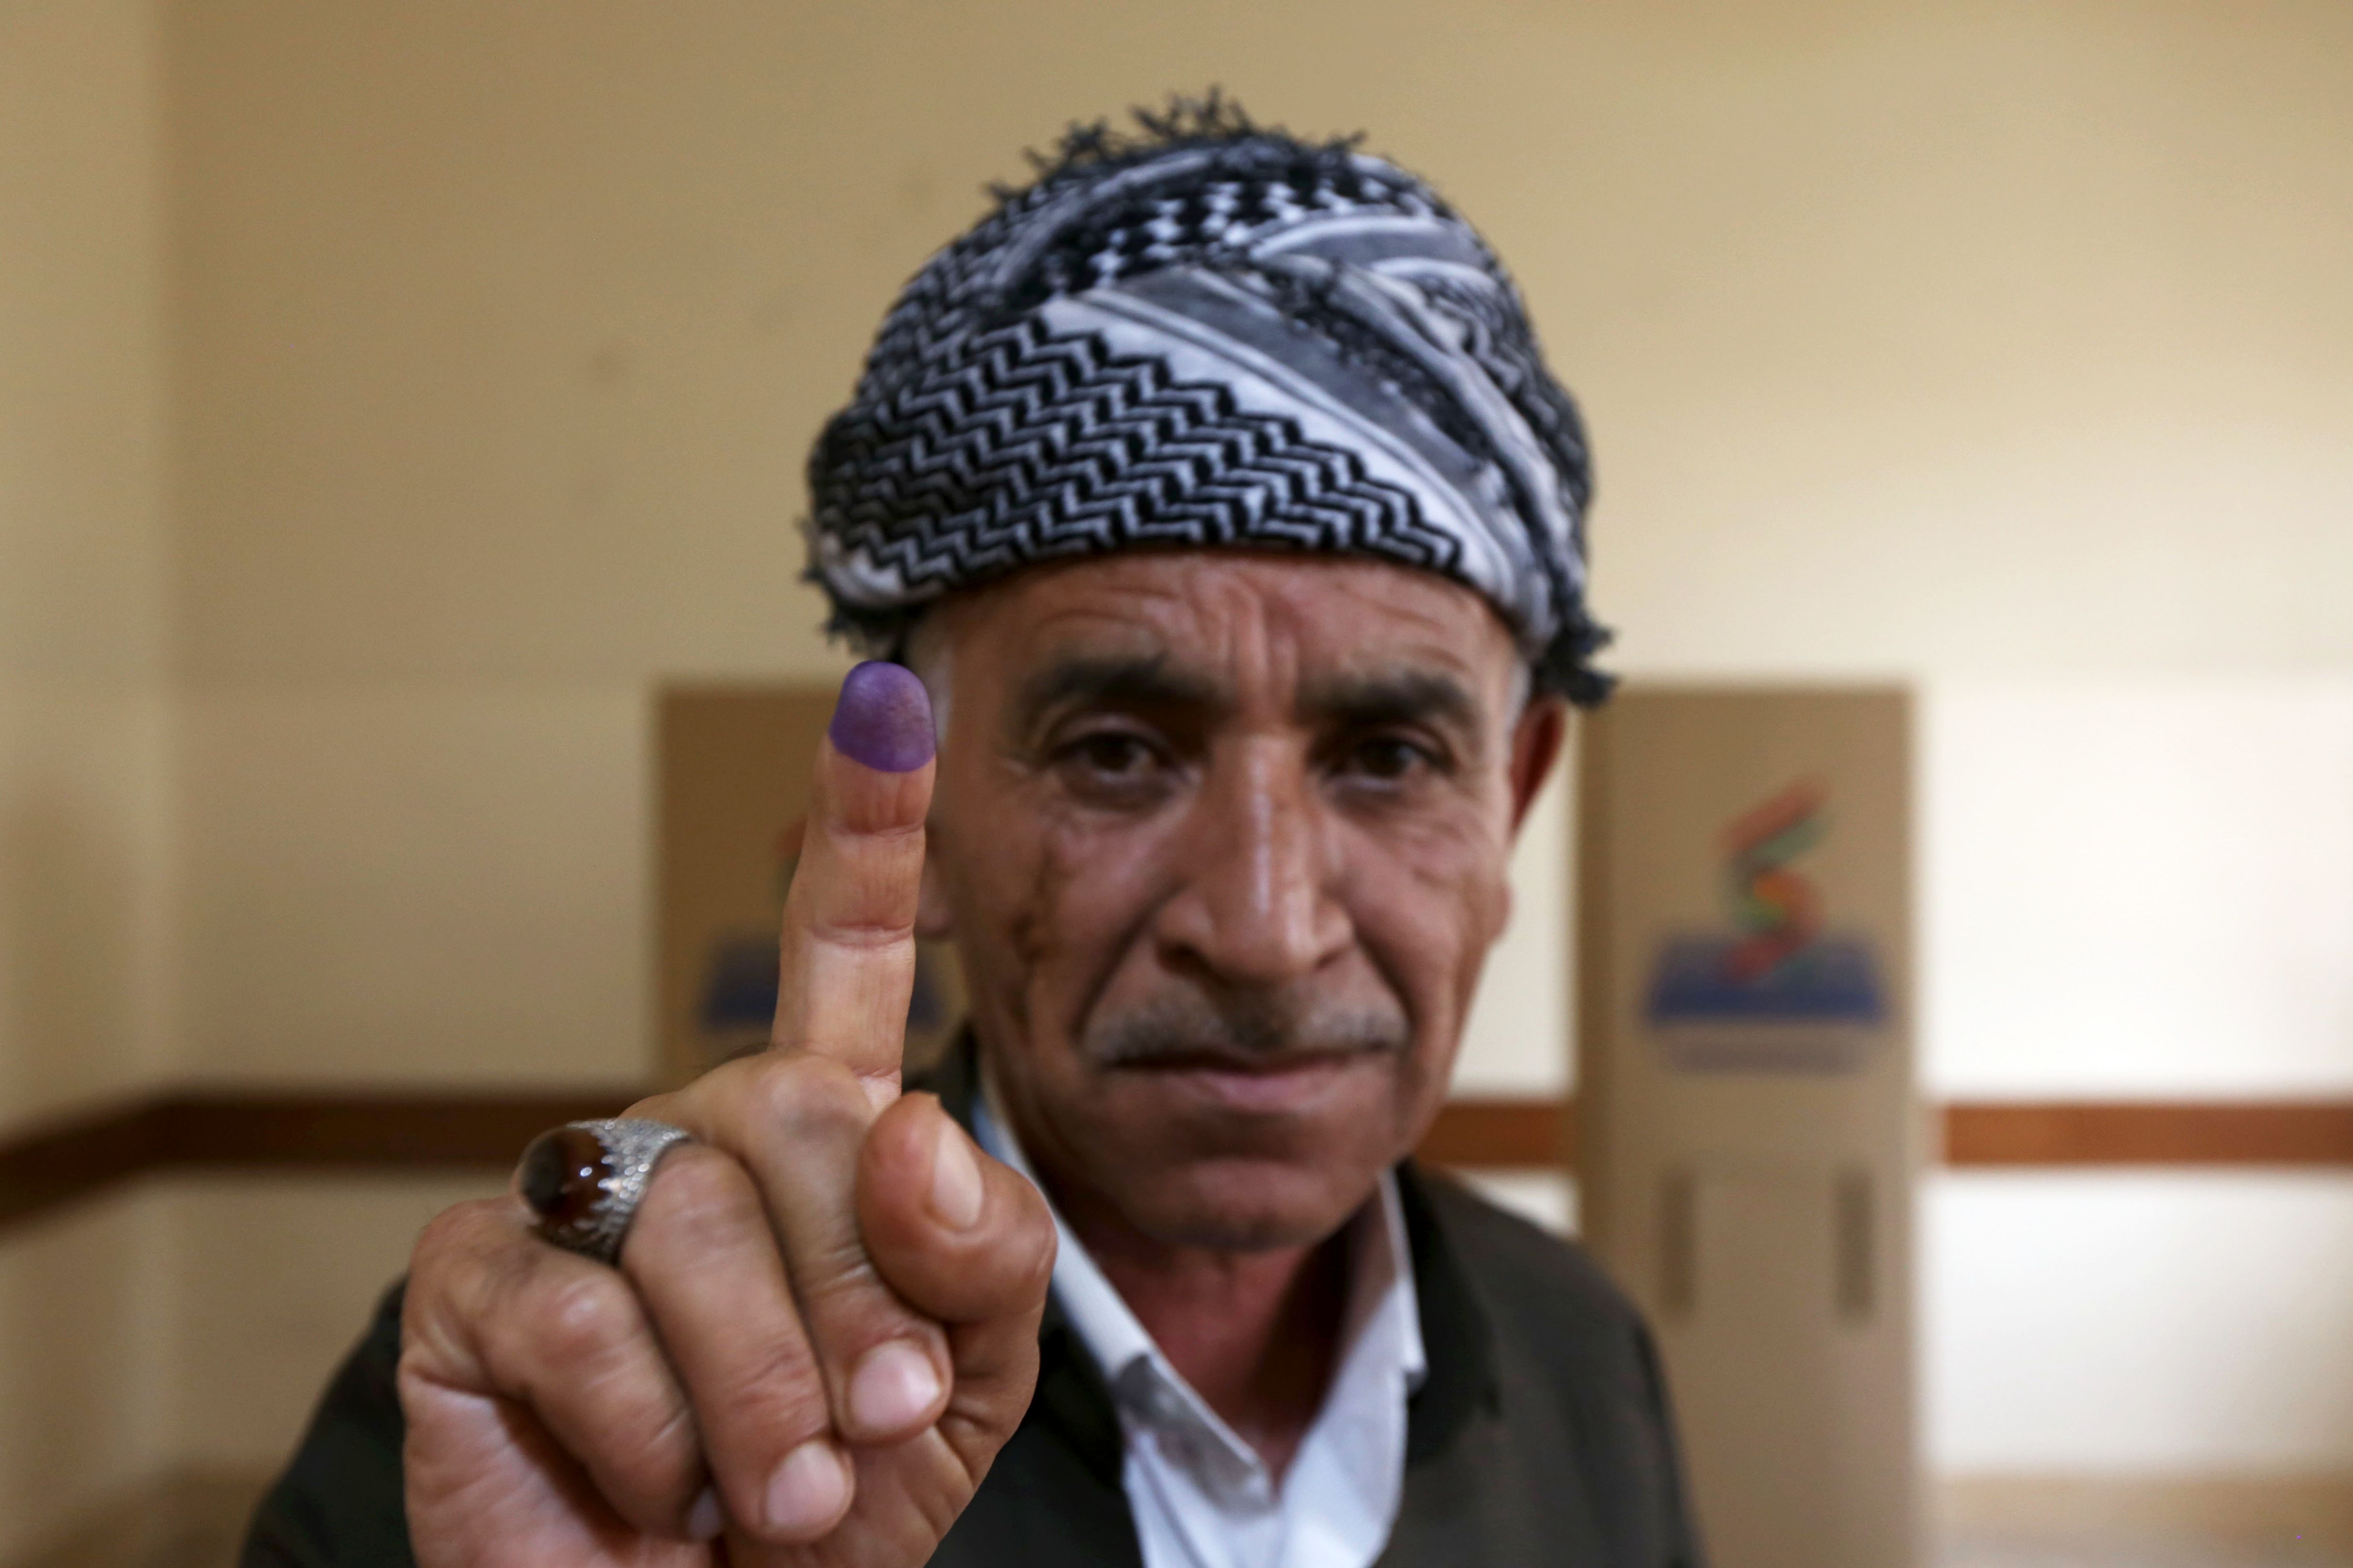 An Iraqi Kurdish man shows his ink-stained finger after voting in the Kurdish independence referendum in Arbil, the capital of the autonomous Kurdish region of northern Iraq, on September 25, 2017. / AFP PHOTO / SAFIN HAMEDSAFIN HAMED/AFP/Getty Images